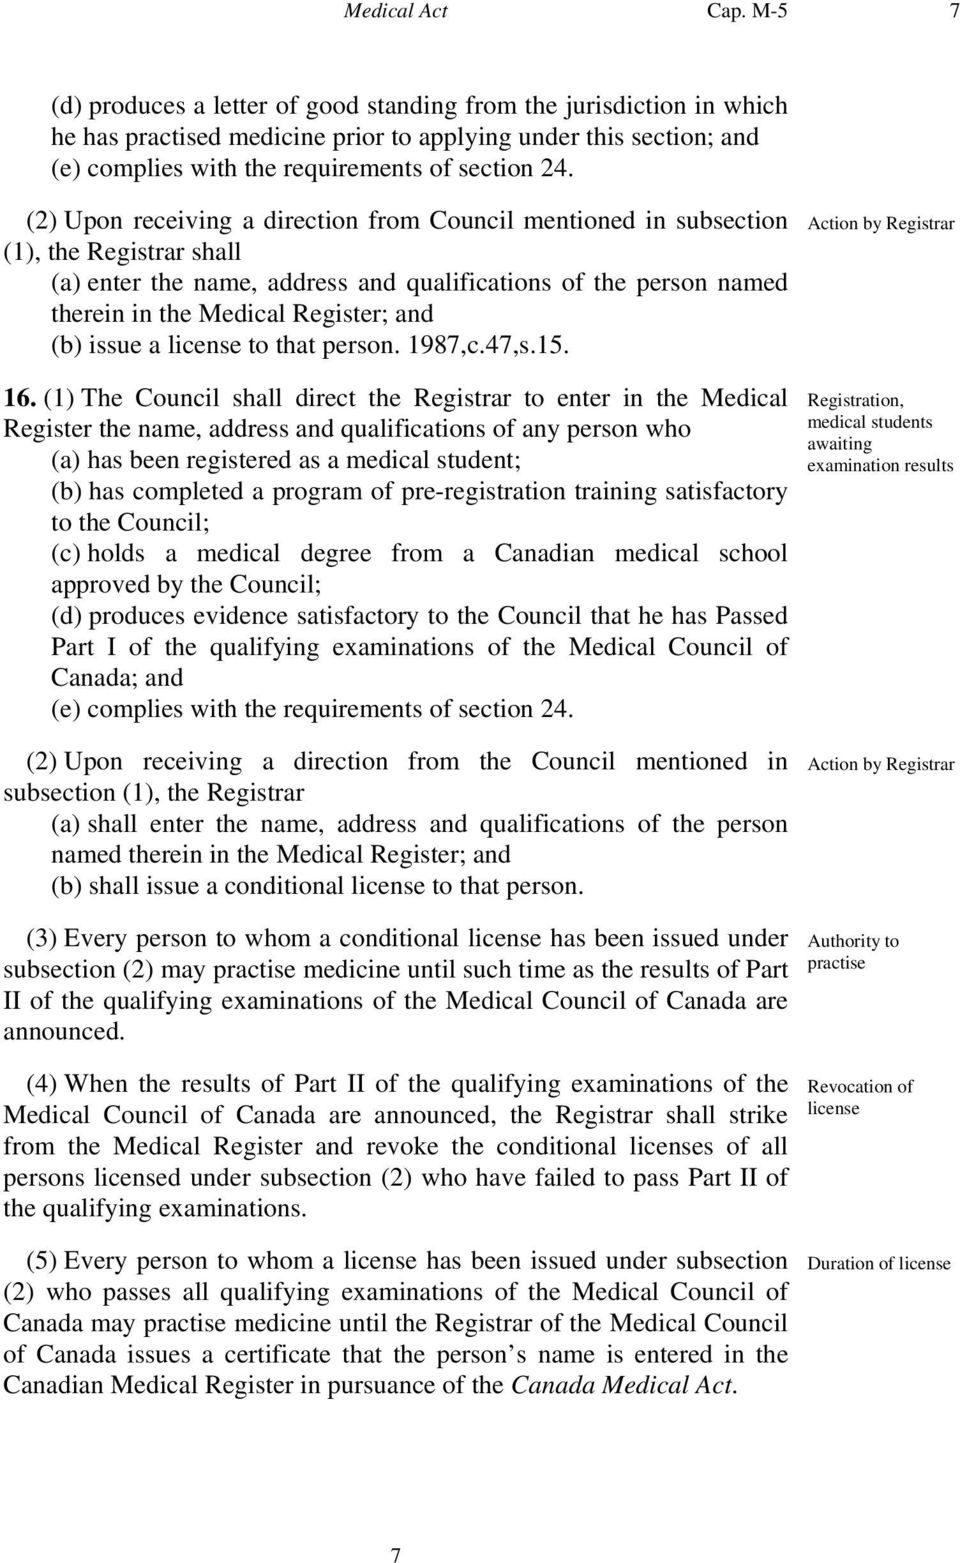 (2) Upon receiving a direction from Council mentioned in subsection (1), the Registrar shall (a) enter the name, address and qualifications of the person named therein in the Medical Register; and